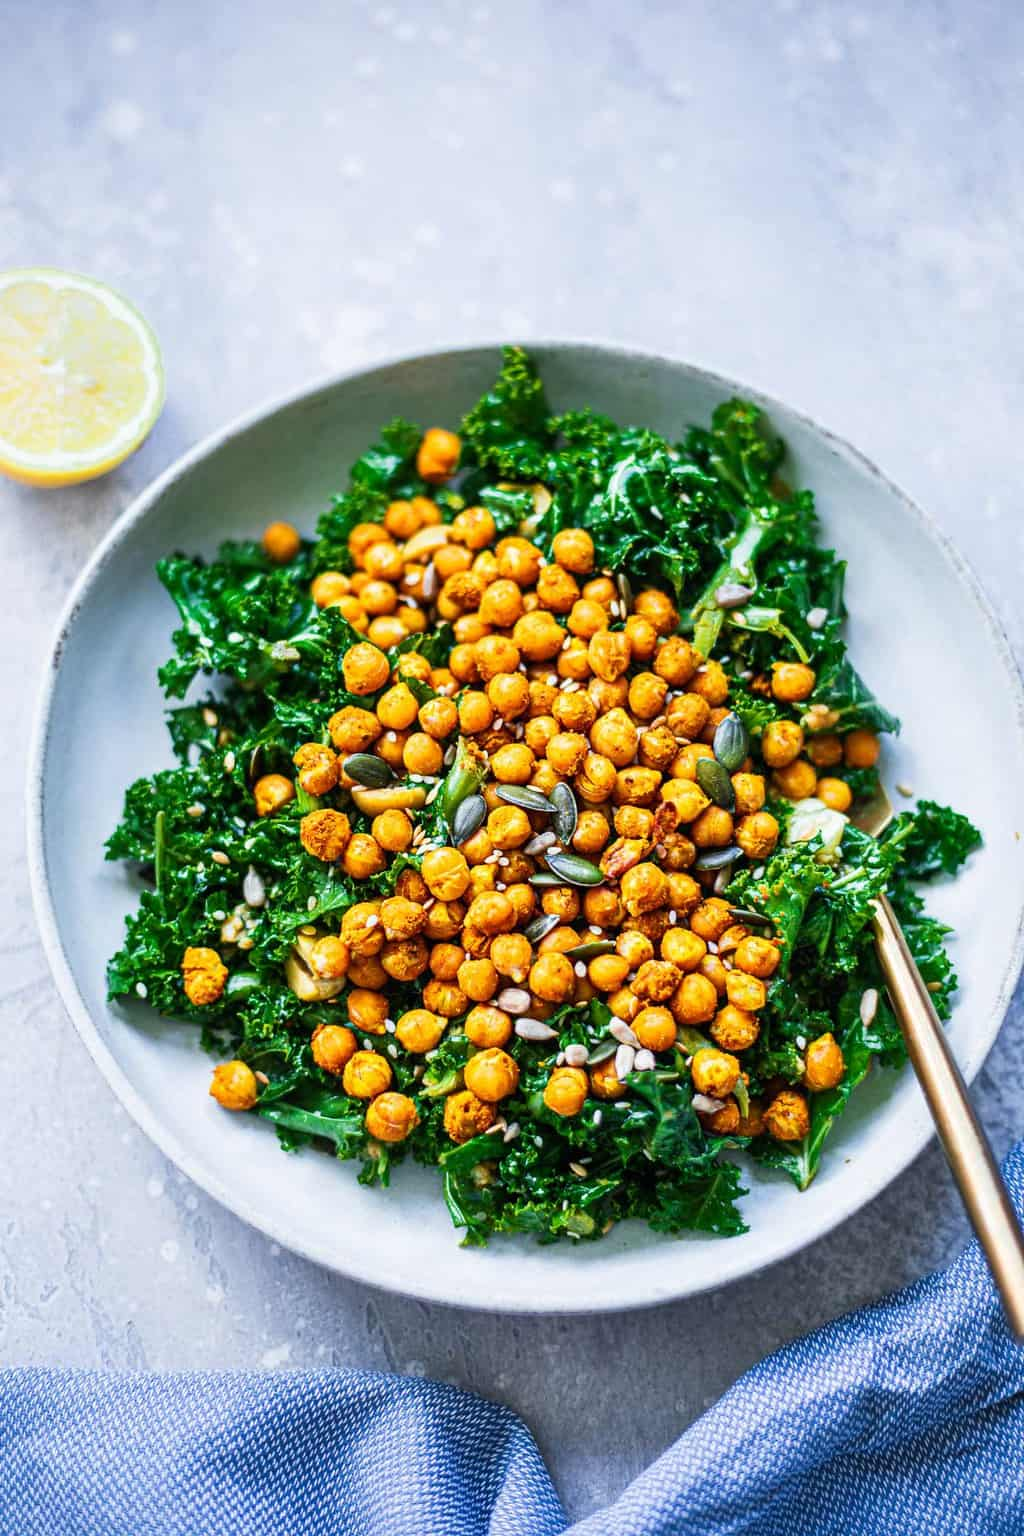 Kale and chickpeas in a white bowl